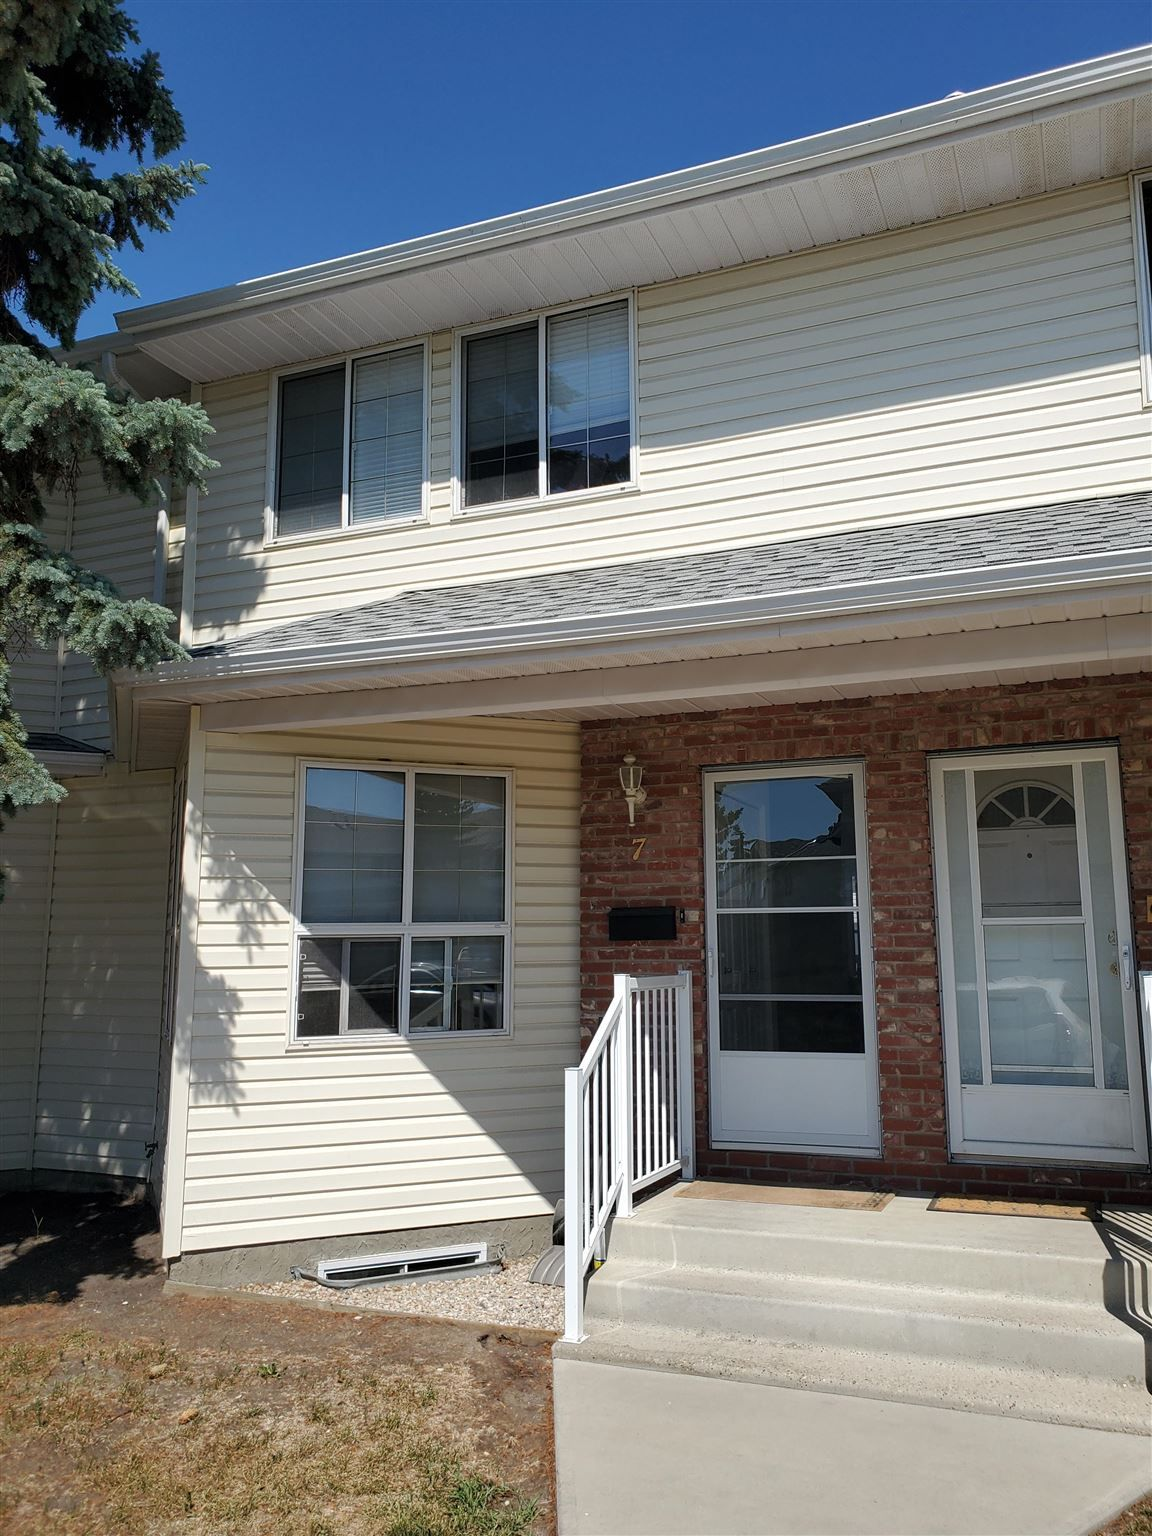 Main Photo: 7 1033 YOUVILLE Drive W in Edmonton: Zone 29 Townhouse for sale : MLS®# E4253895